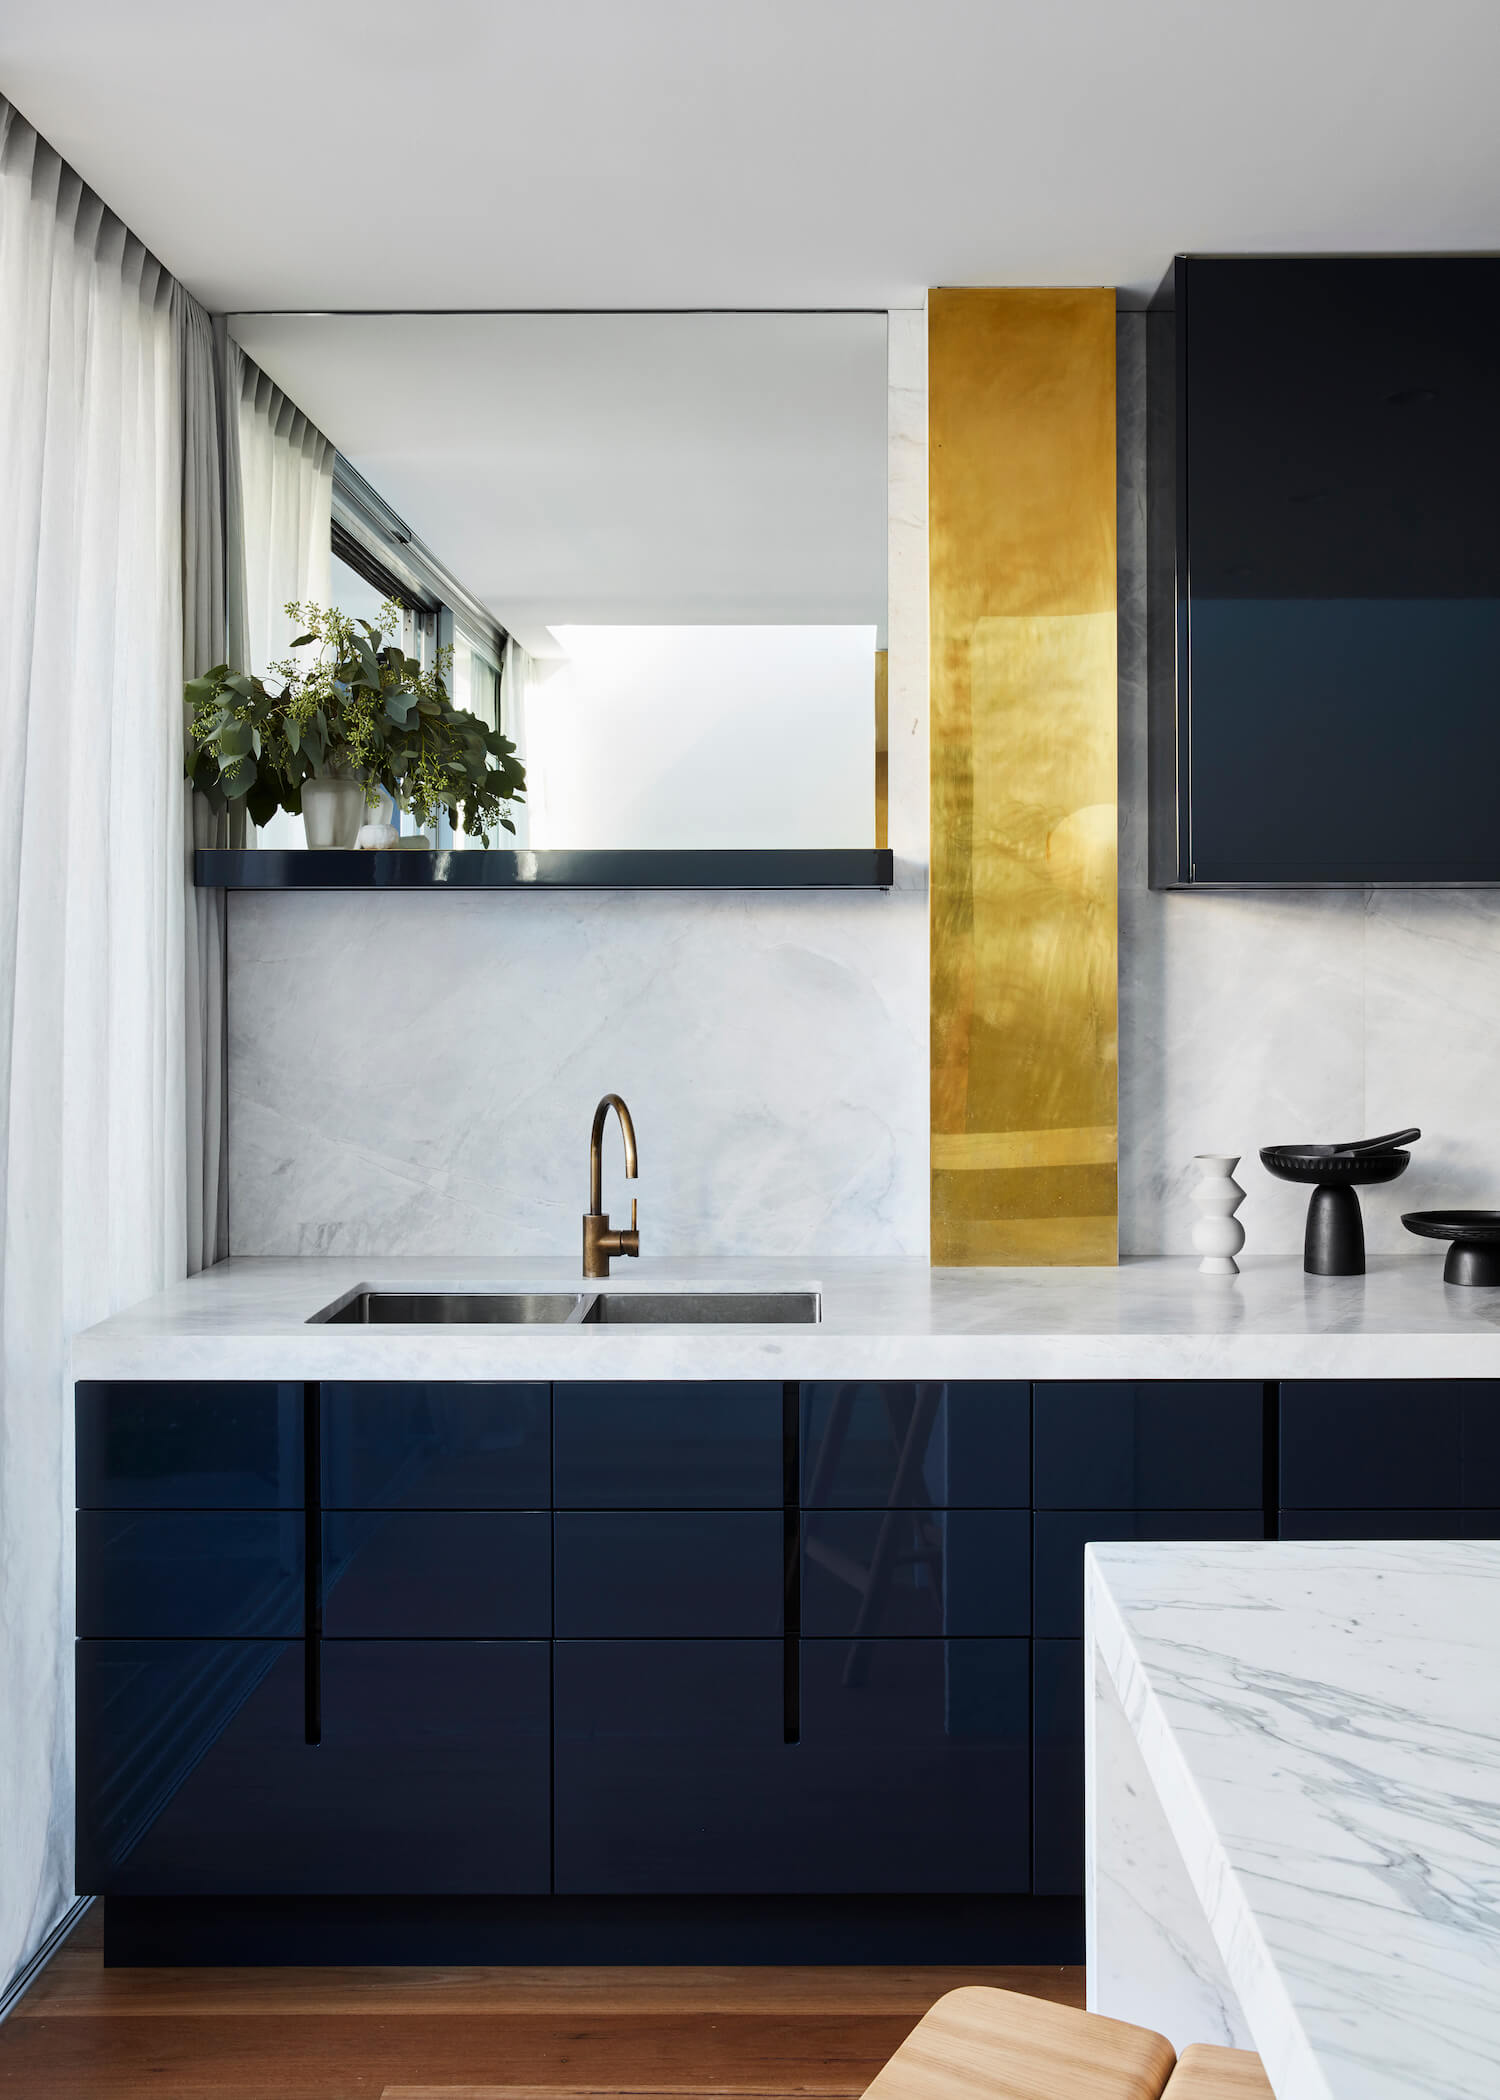 est living australian interiors surry hills fiona lynch 4